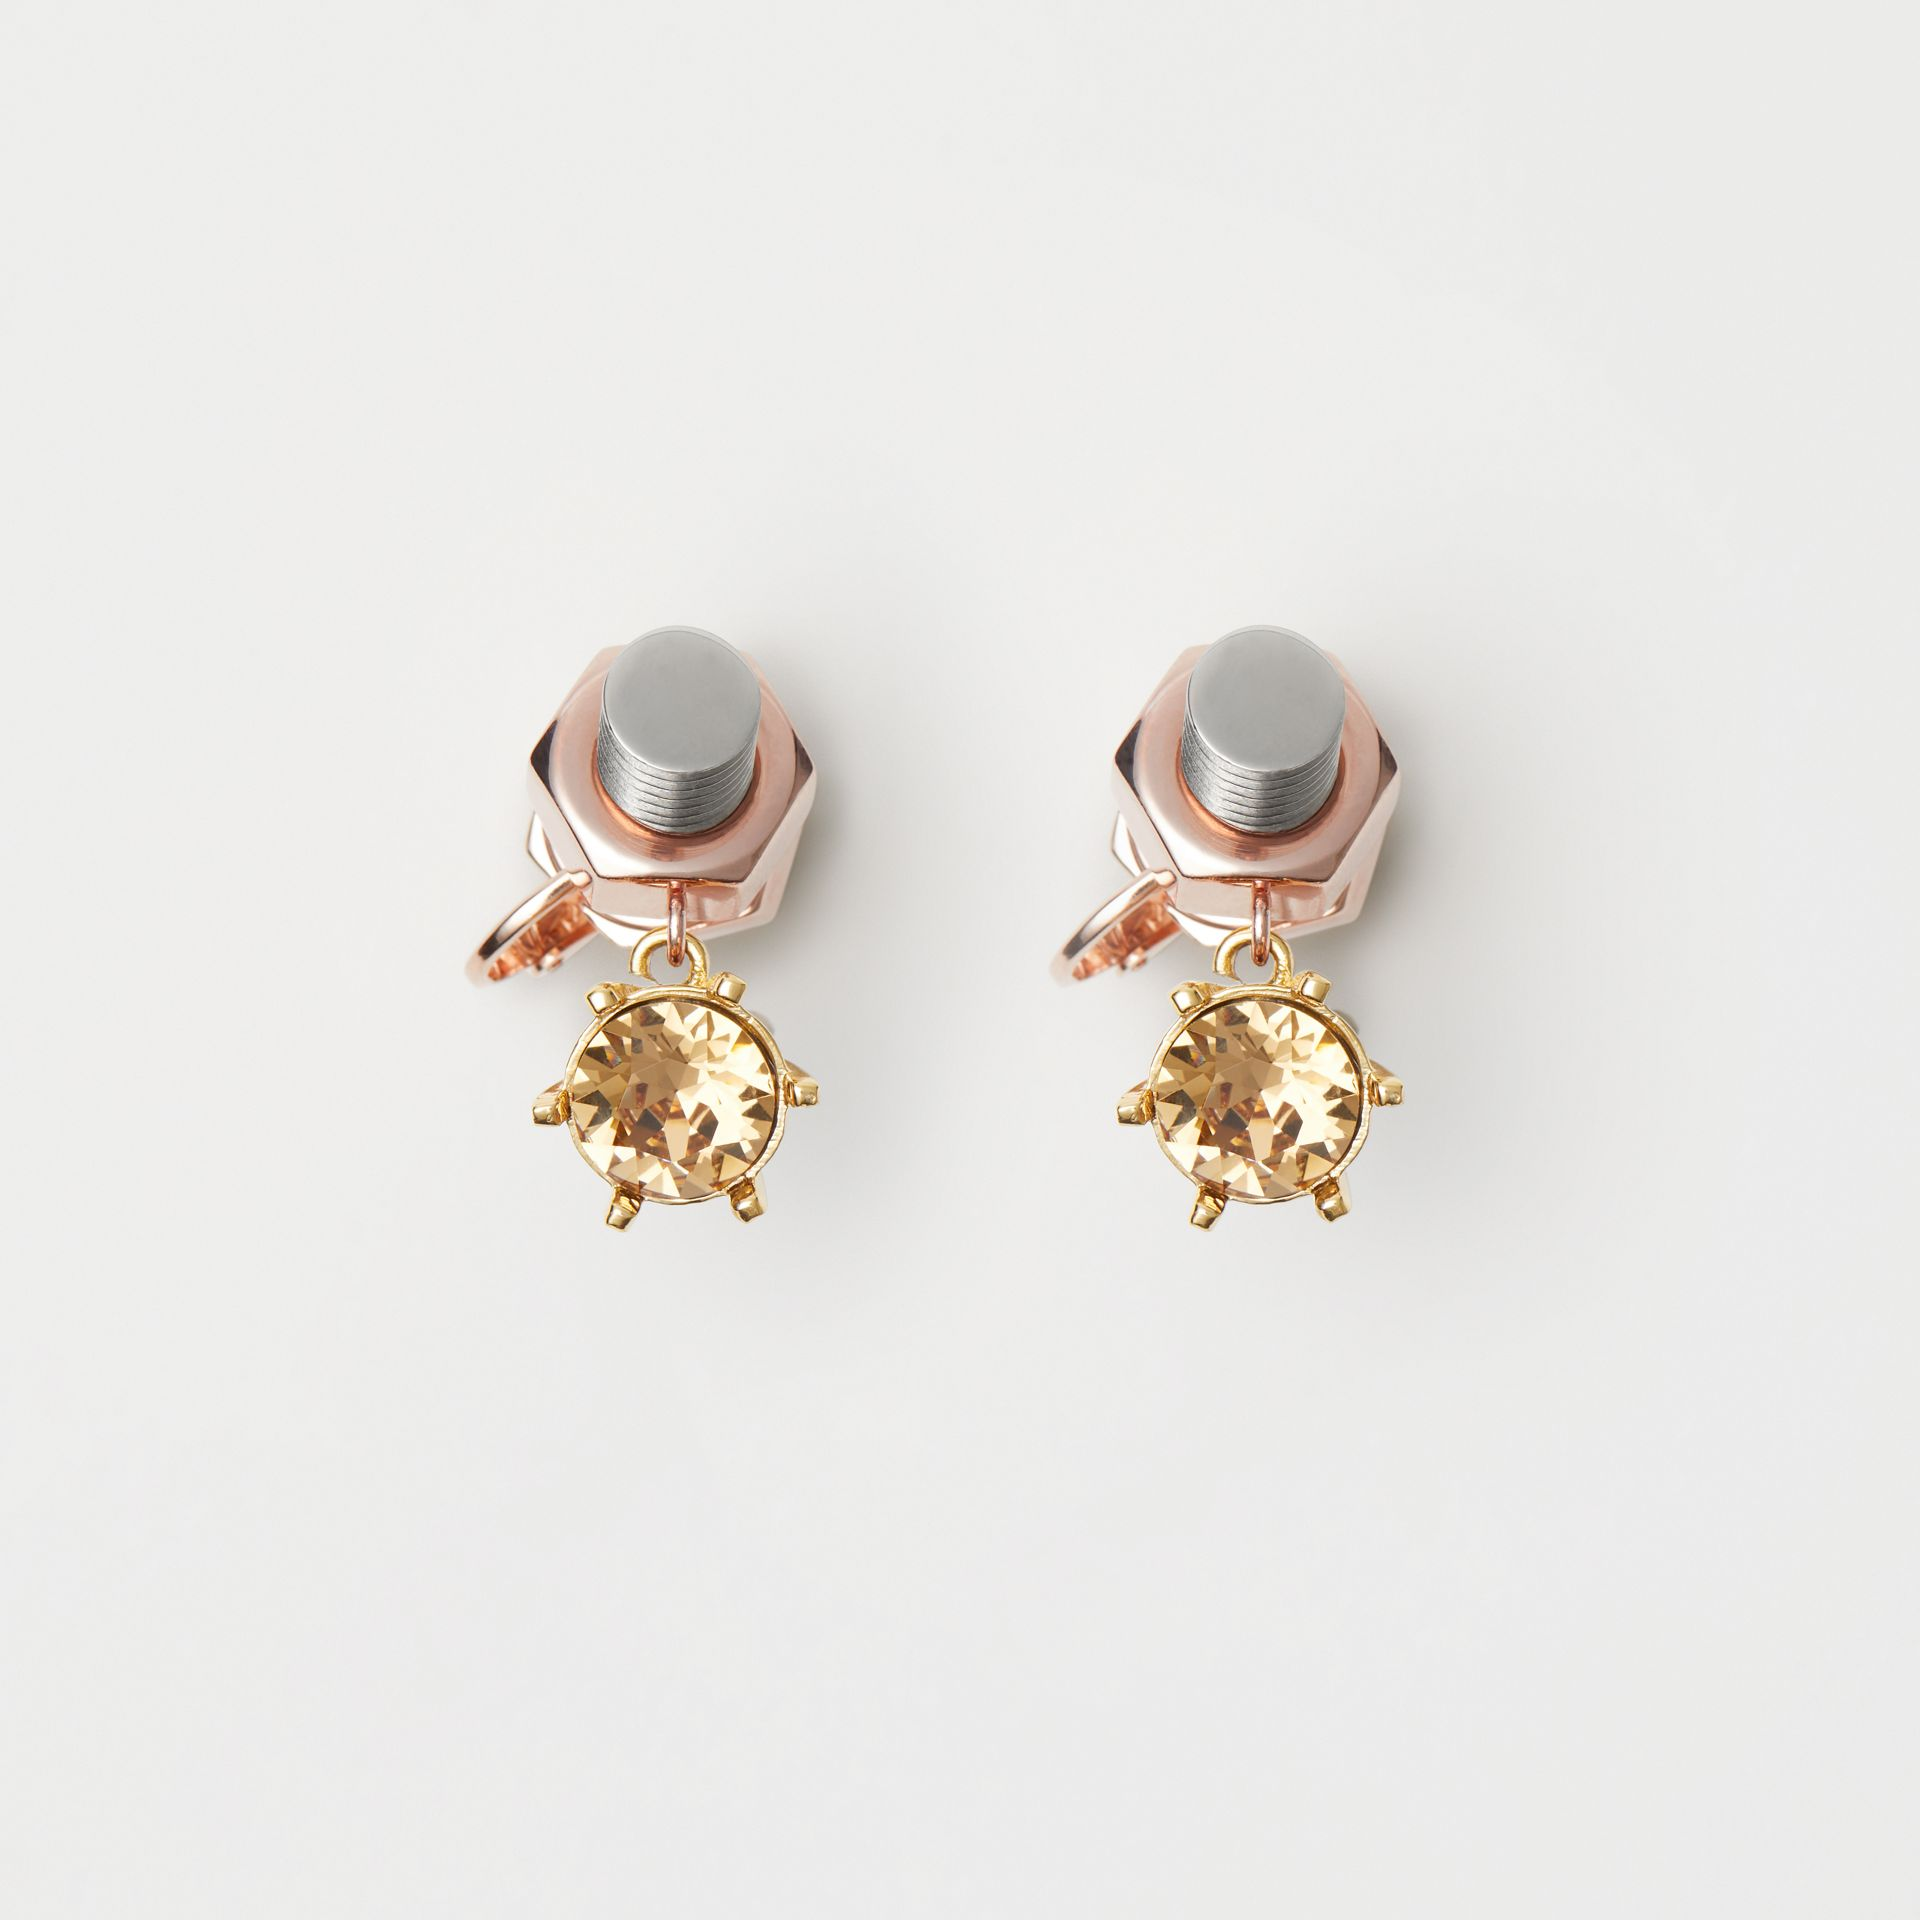 Crystal Charm Rose Gold-plated Nut and Bolt Earrings in Gold/palladium - Women | Burberry Singapore - gallery image 0